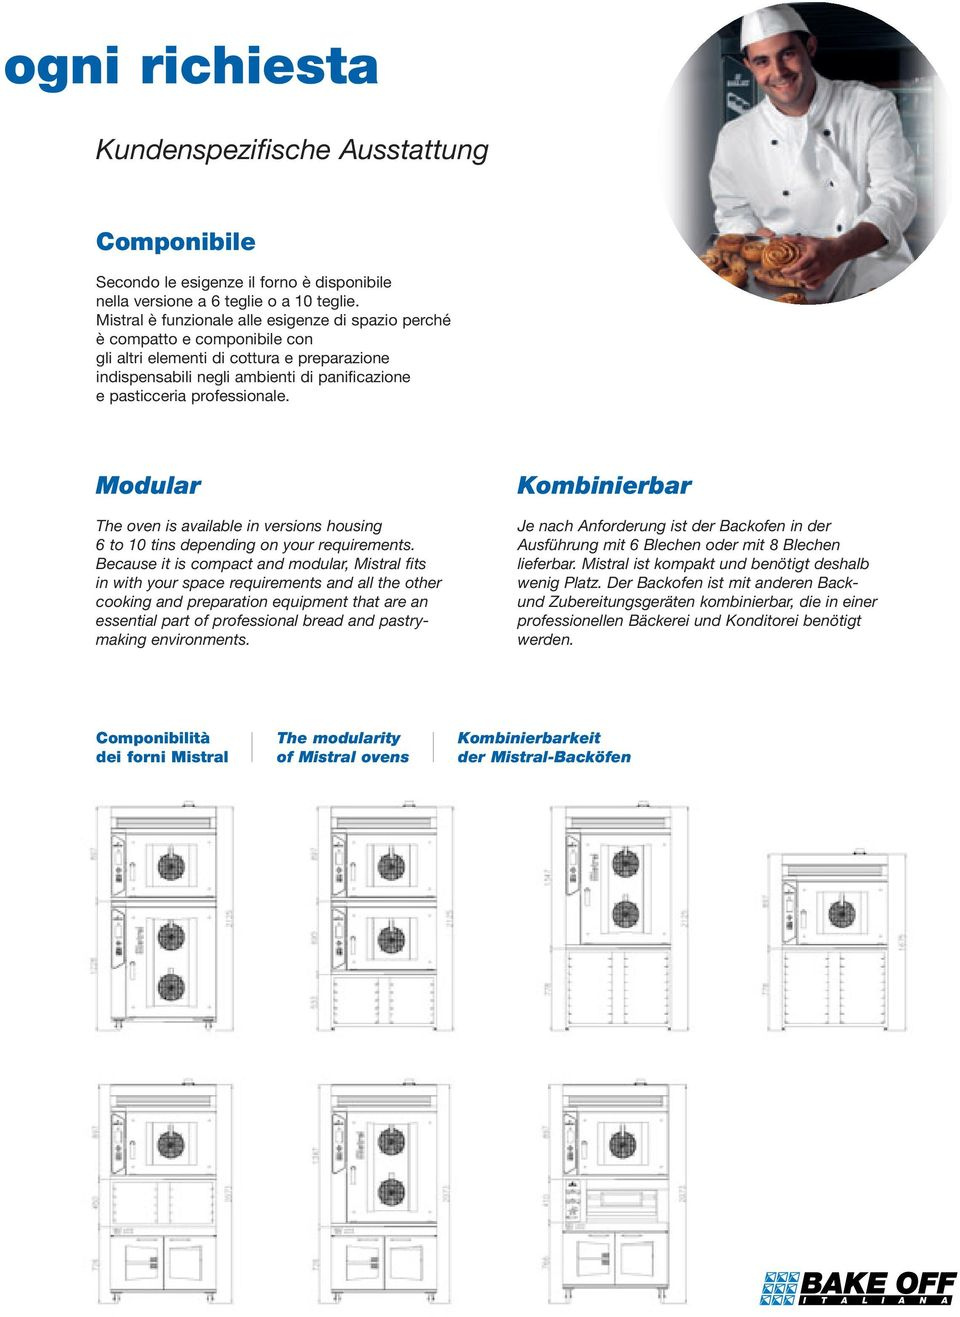 professionale. Modular The oven is available in versions housing 6 to 10 tins depending on your requirements.